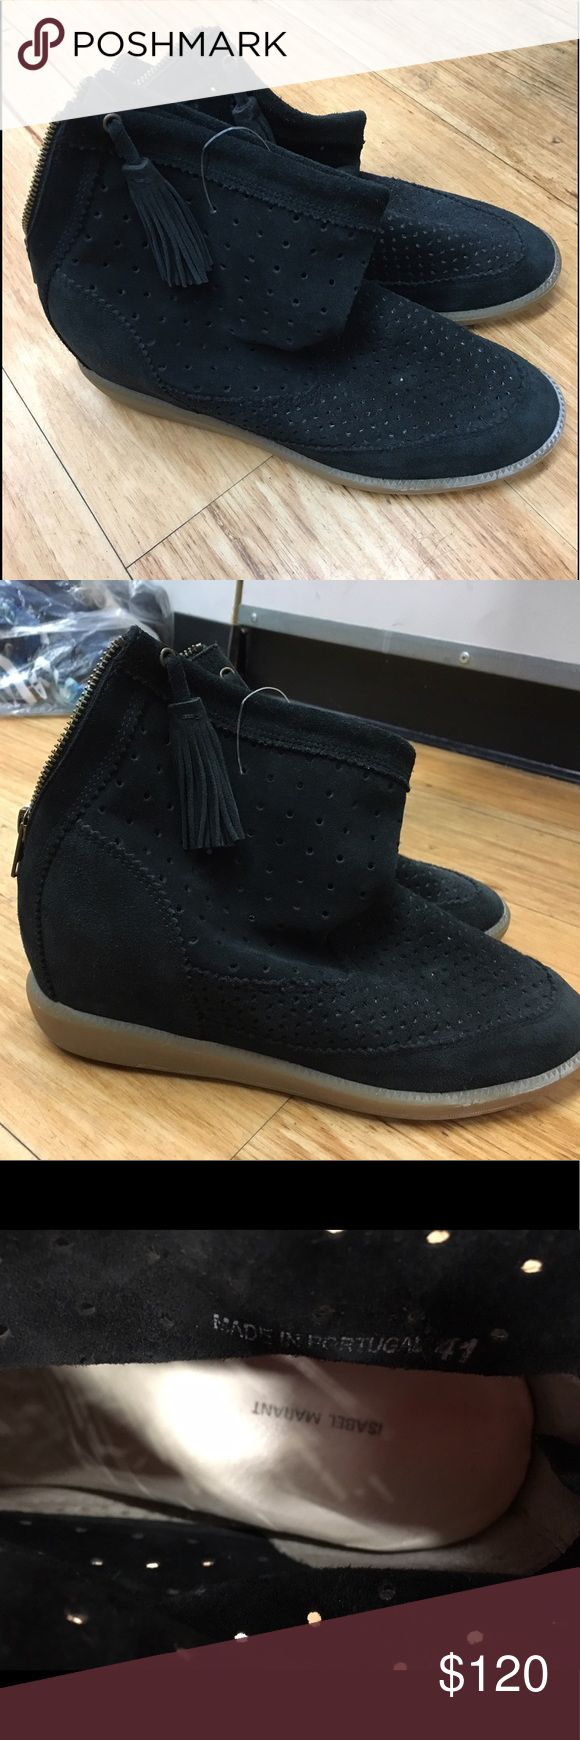 Isabel Marant Basley heeled sneaker boots - 41 These are in excellent condition. Hardly worn. Have the two tassels hanging on each side. Love them!! Hate to let them go!! Flash sale!! They say 41 but they're really a size 10. European sizes are weeeiiiird! Also being sold on Poshmark and online for $300-375!! Amazing deal! Isabel Marant Shoes Ankle Boots & Booties